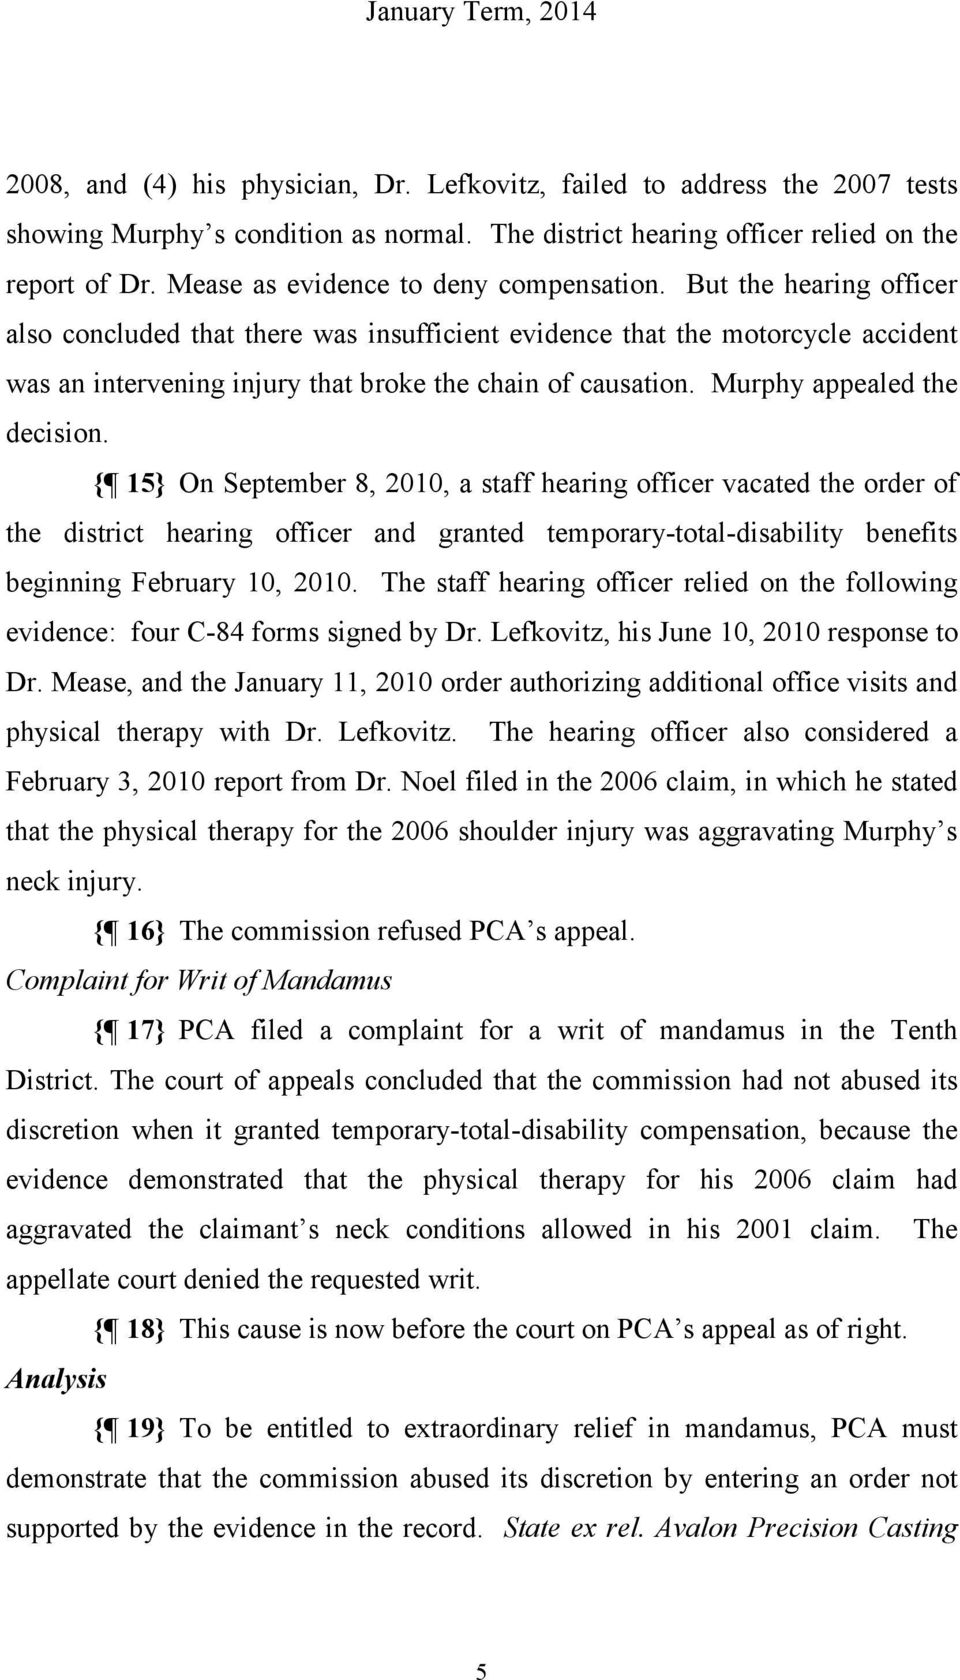 But the hearing officer also concluded that there was insufficient evidence that the motorcycle accident was an intervening injury that broke the chain of causation. Murphy appealed the decision.